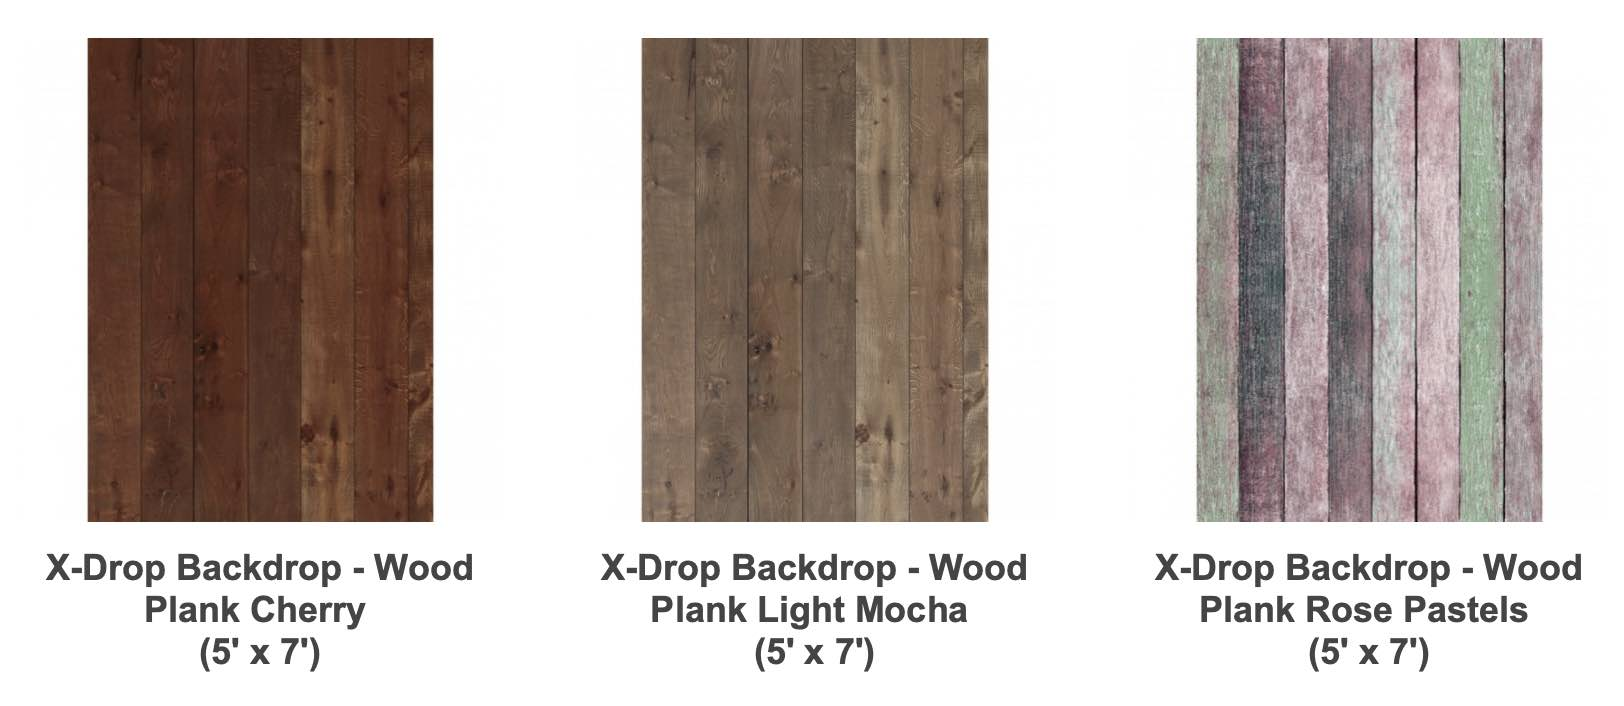 Photo of three types of canvas backdrops that resemble wood from